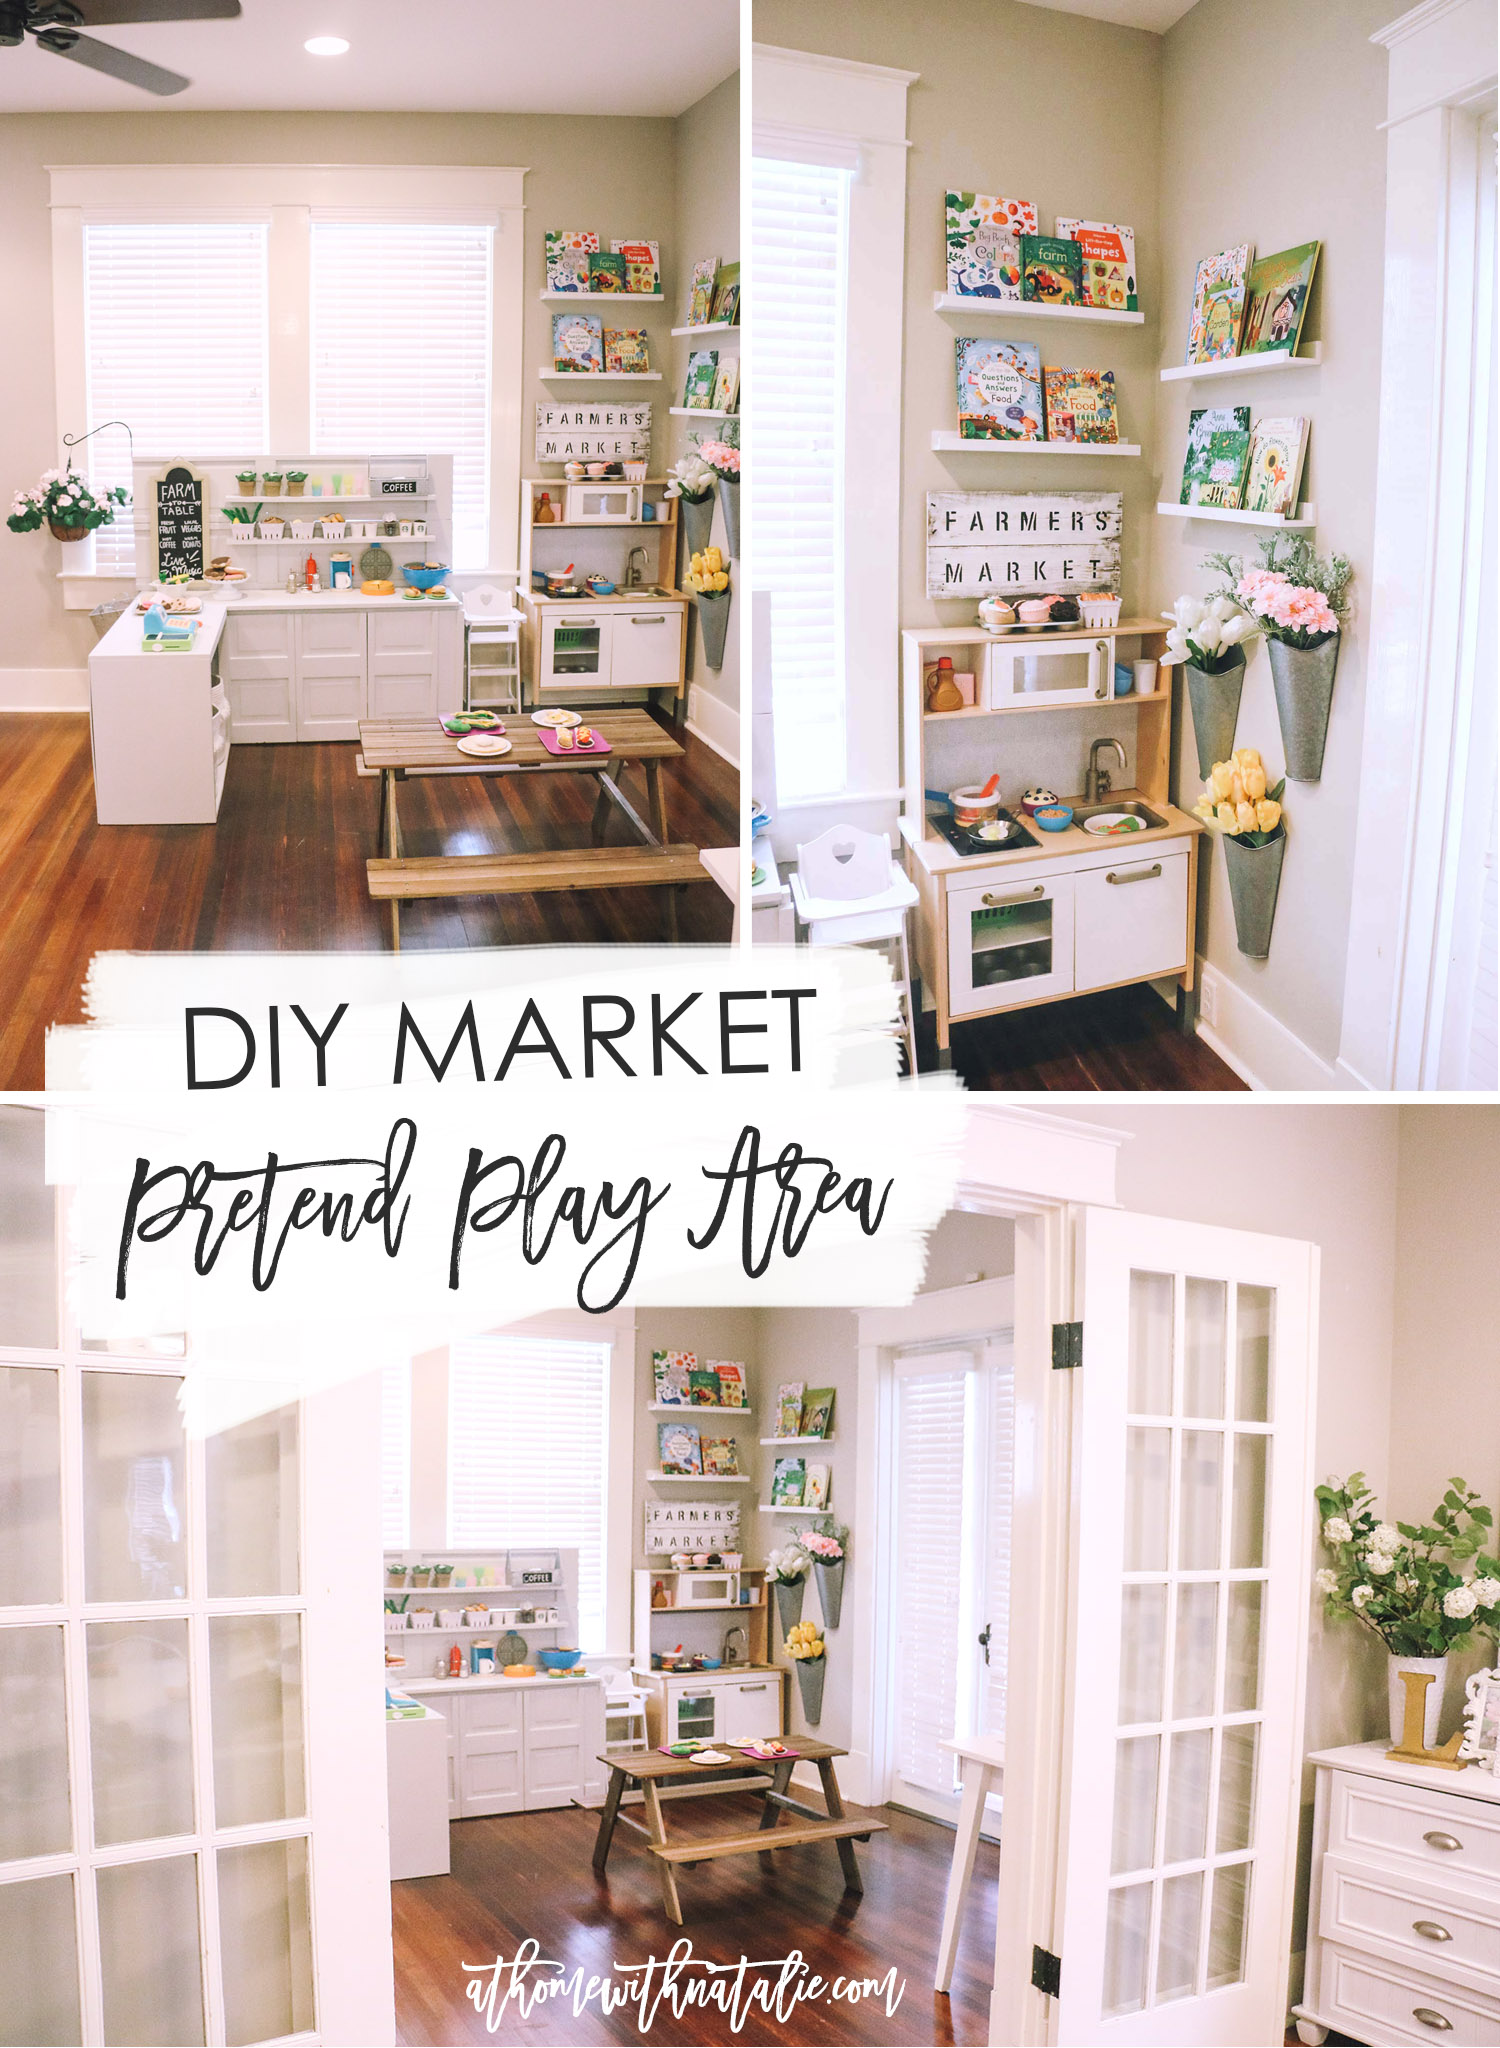 Diy play kitchen pretend play area at home with natalie bloglovin we are by no means professional carpenters weve only built from scratch a few times and learn something each time sharing this because you can do this solutioingenieria Image collections